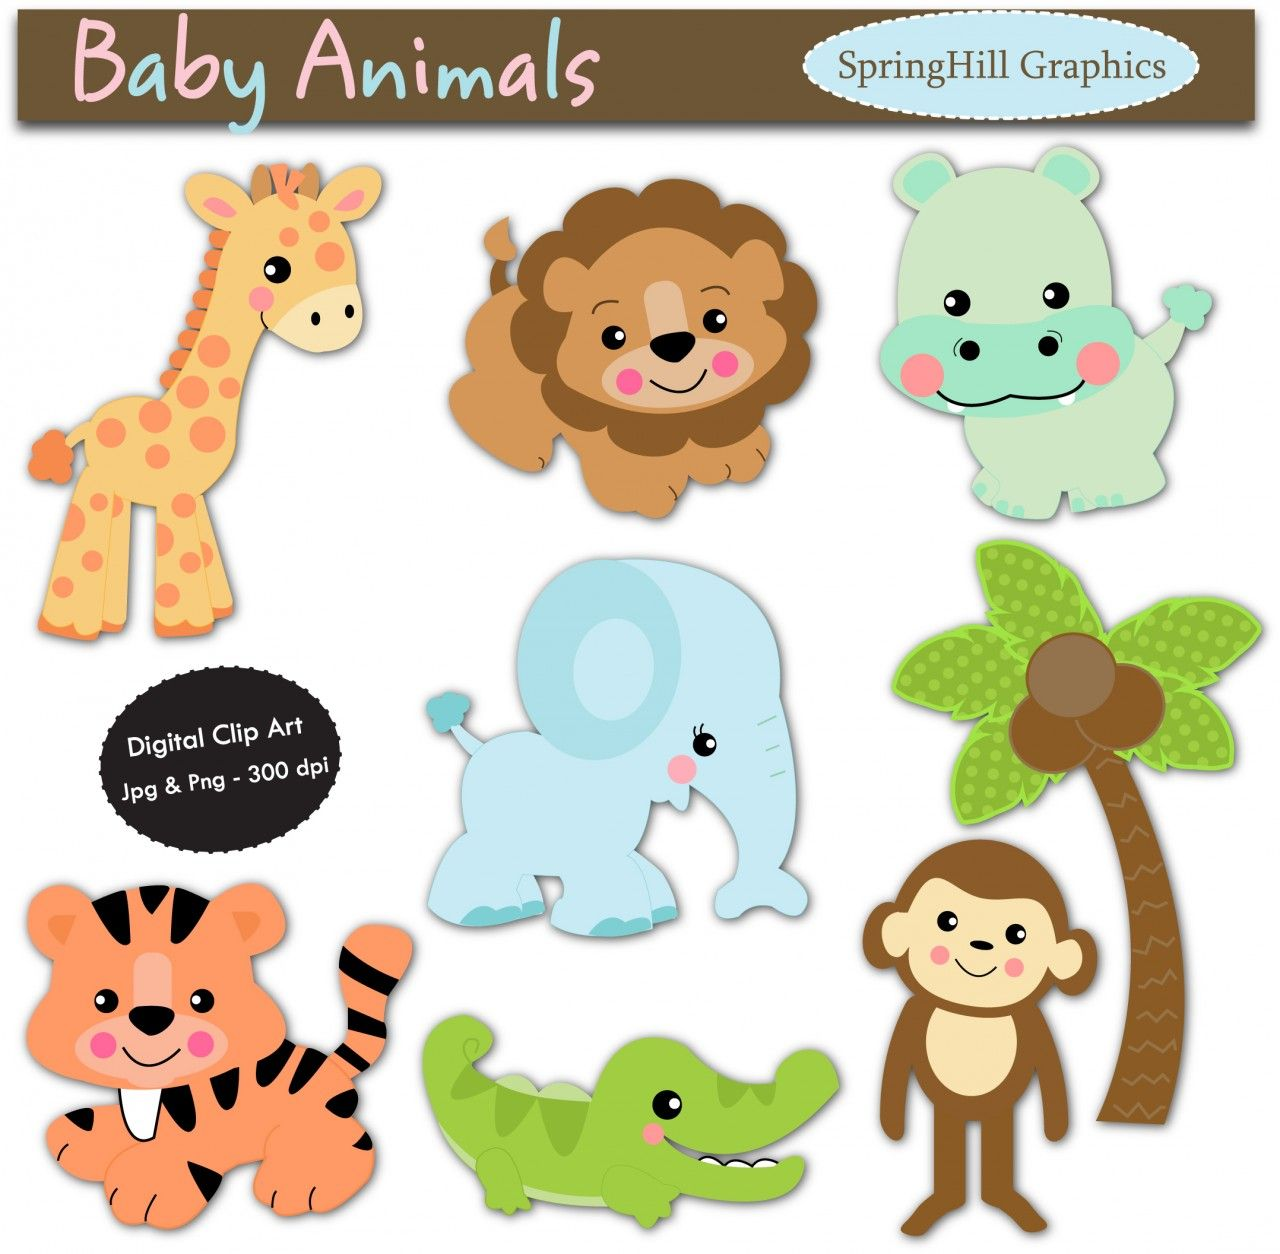 Not Free But Cute Clip Art Invitations Also Sell